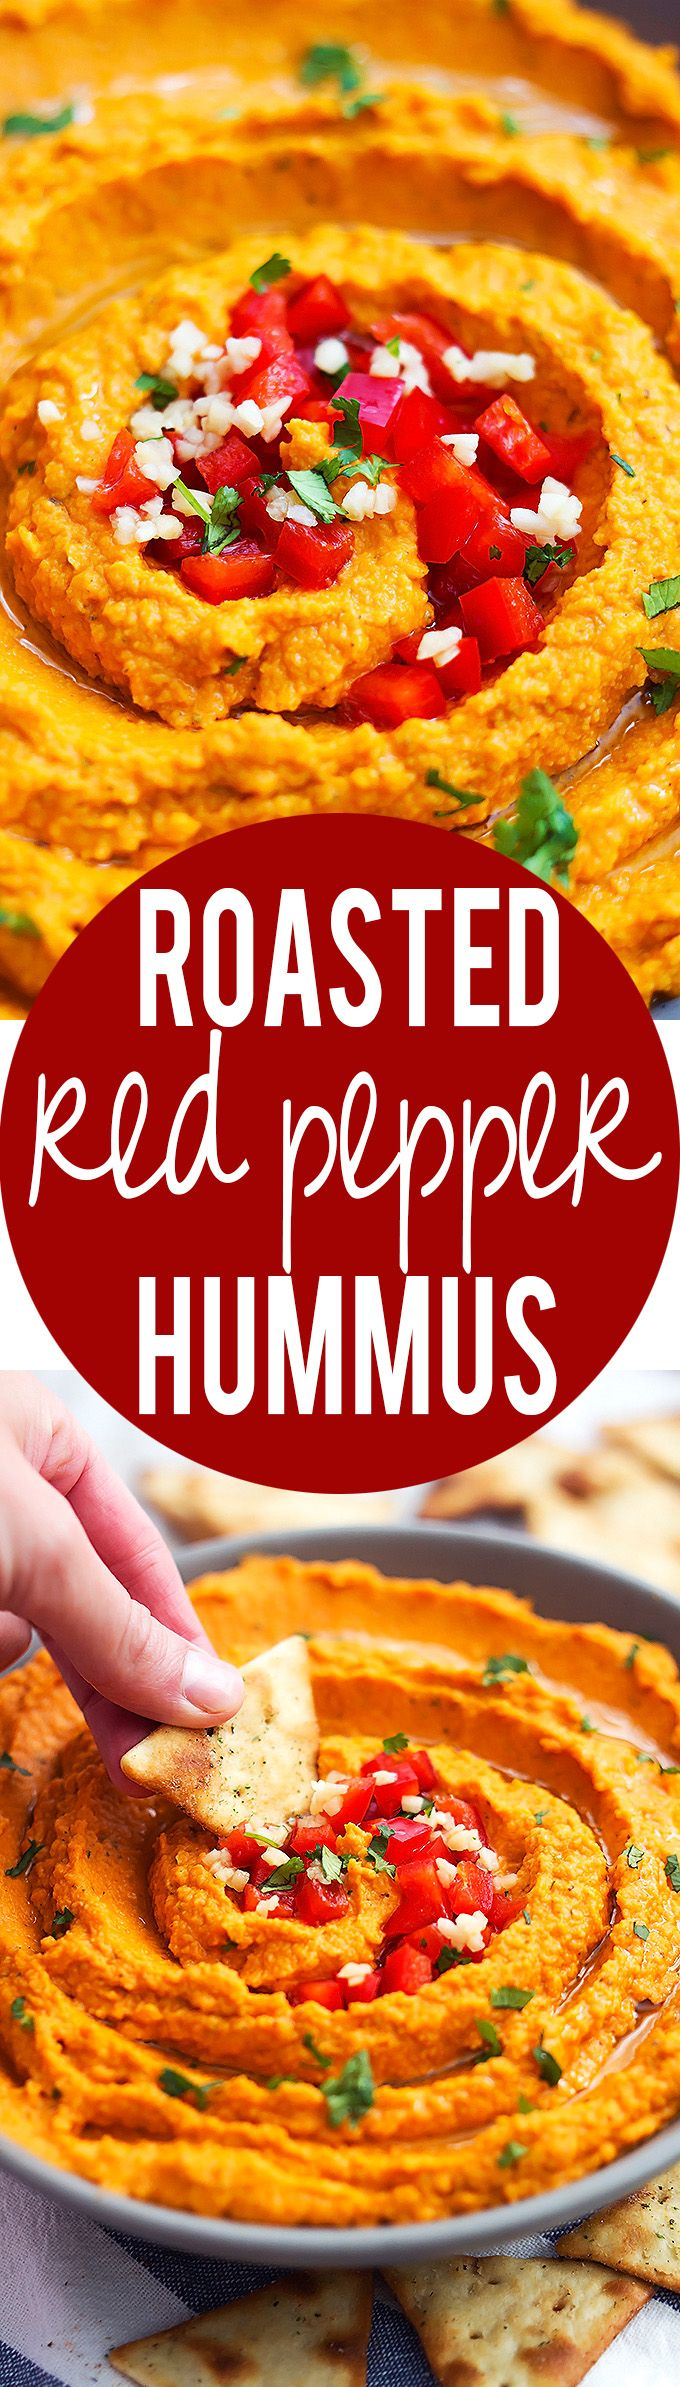 Roasted Red Pepper Hummus Dip | Creme de la Crumb